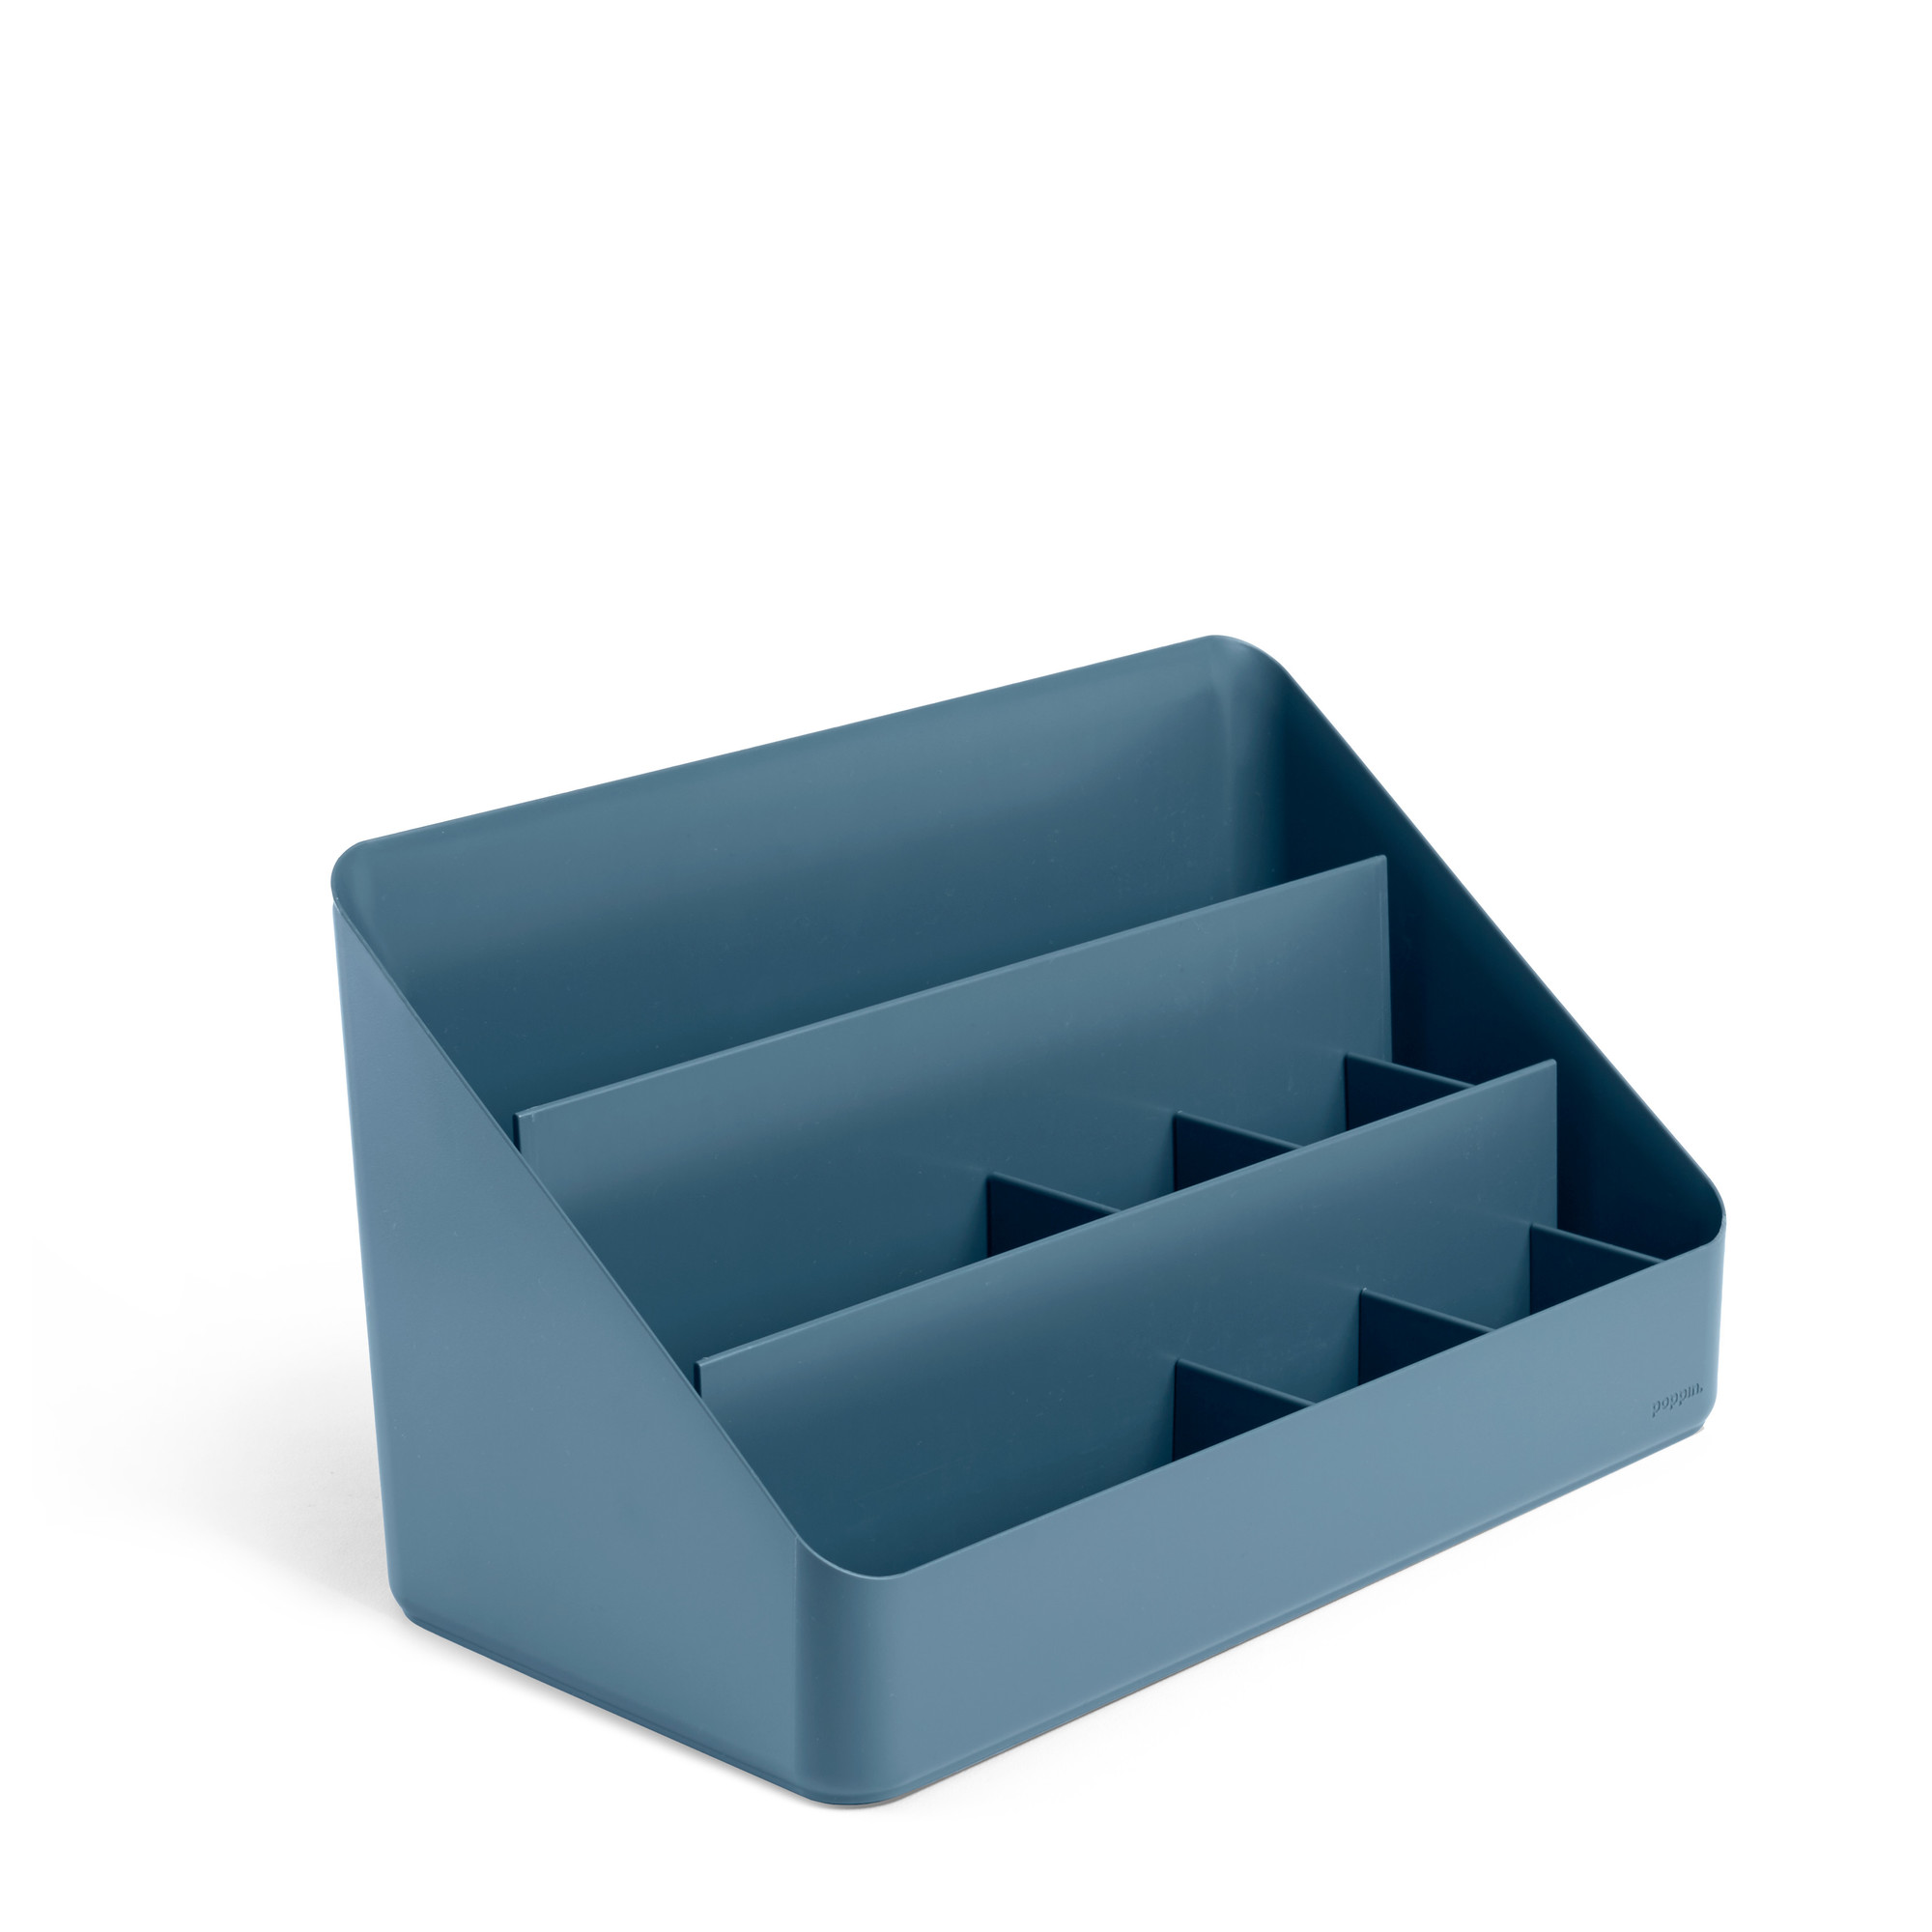 hunky up dory ergo blue flair parsons mini fold white lacquer most reception desk